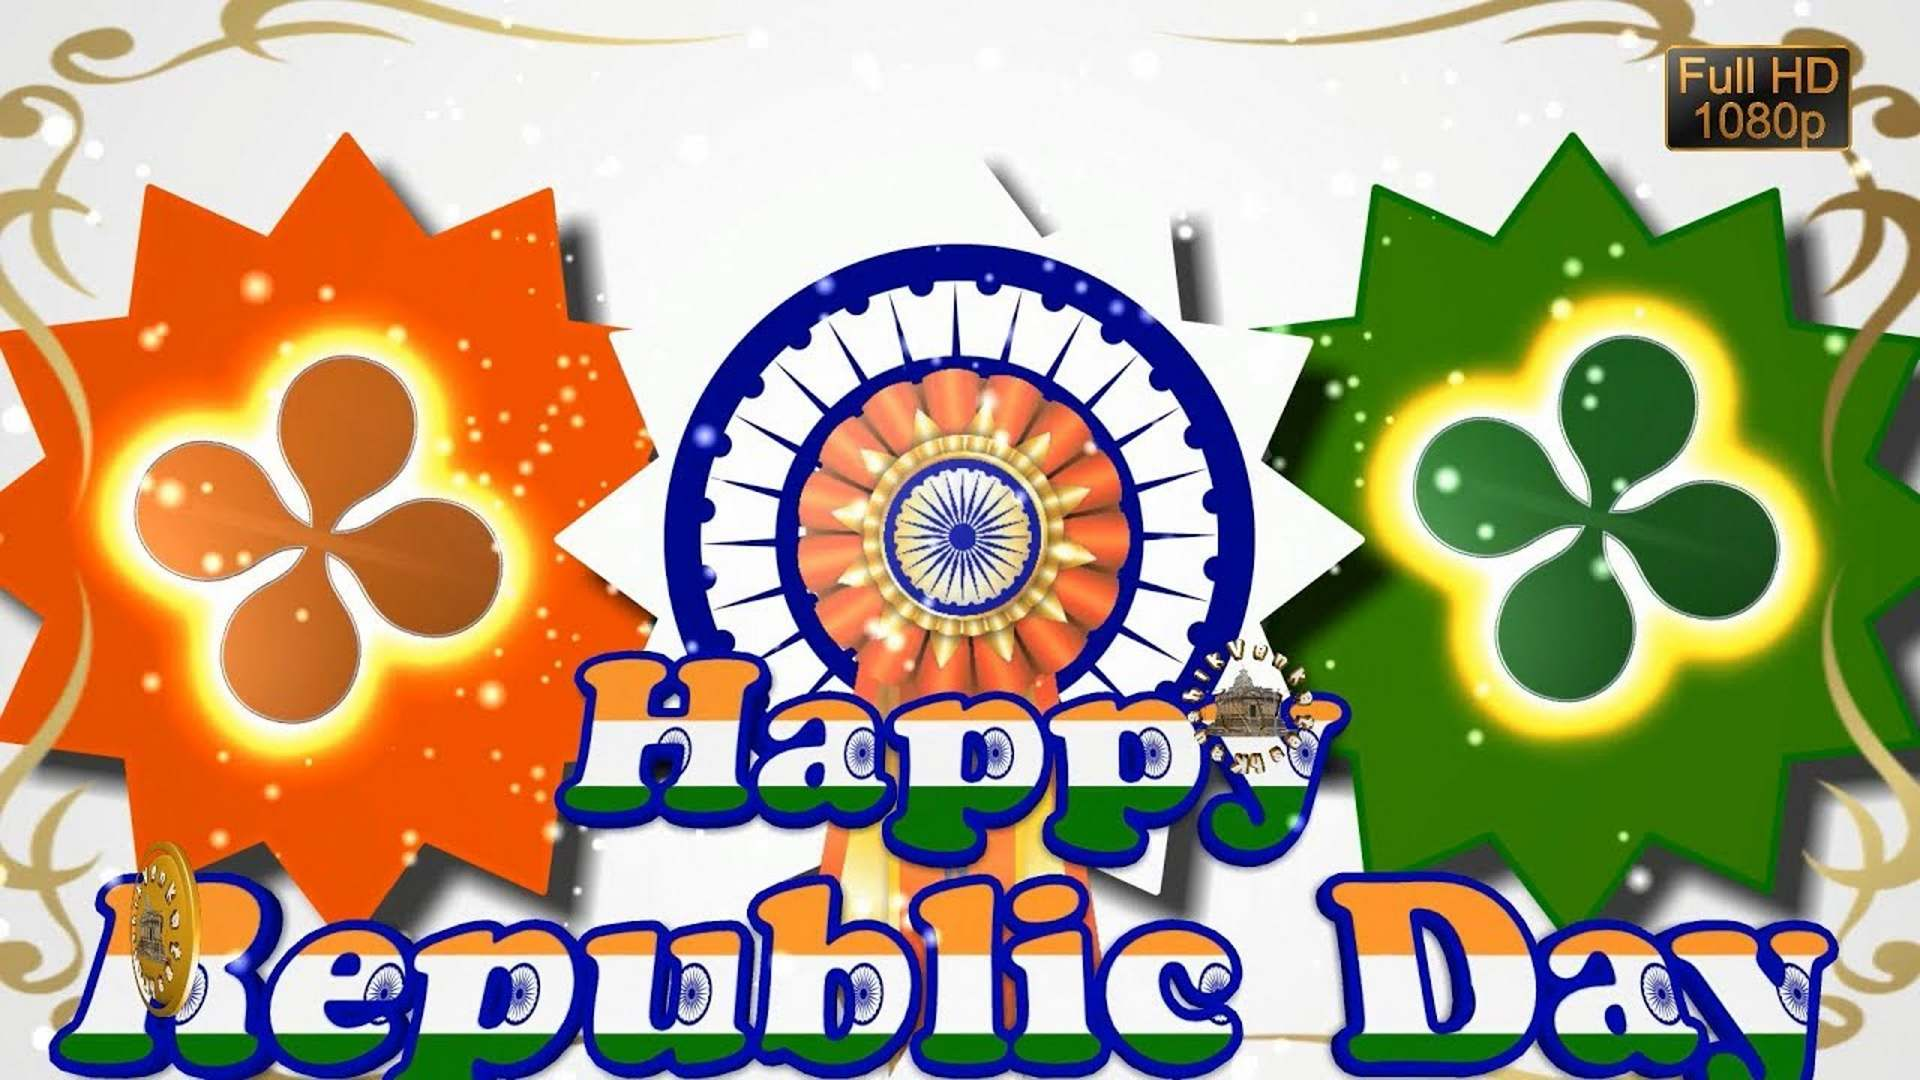 Greetings Images of Indian National Festival (January 26) to greet your dear Indian anywhere in the world Happy Republic Day.